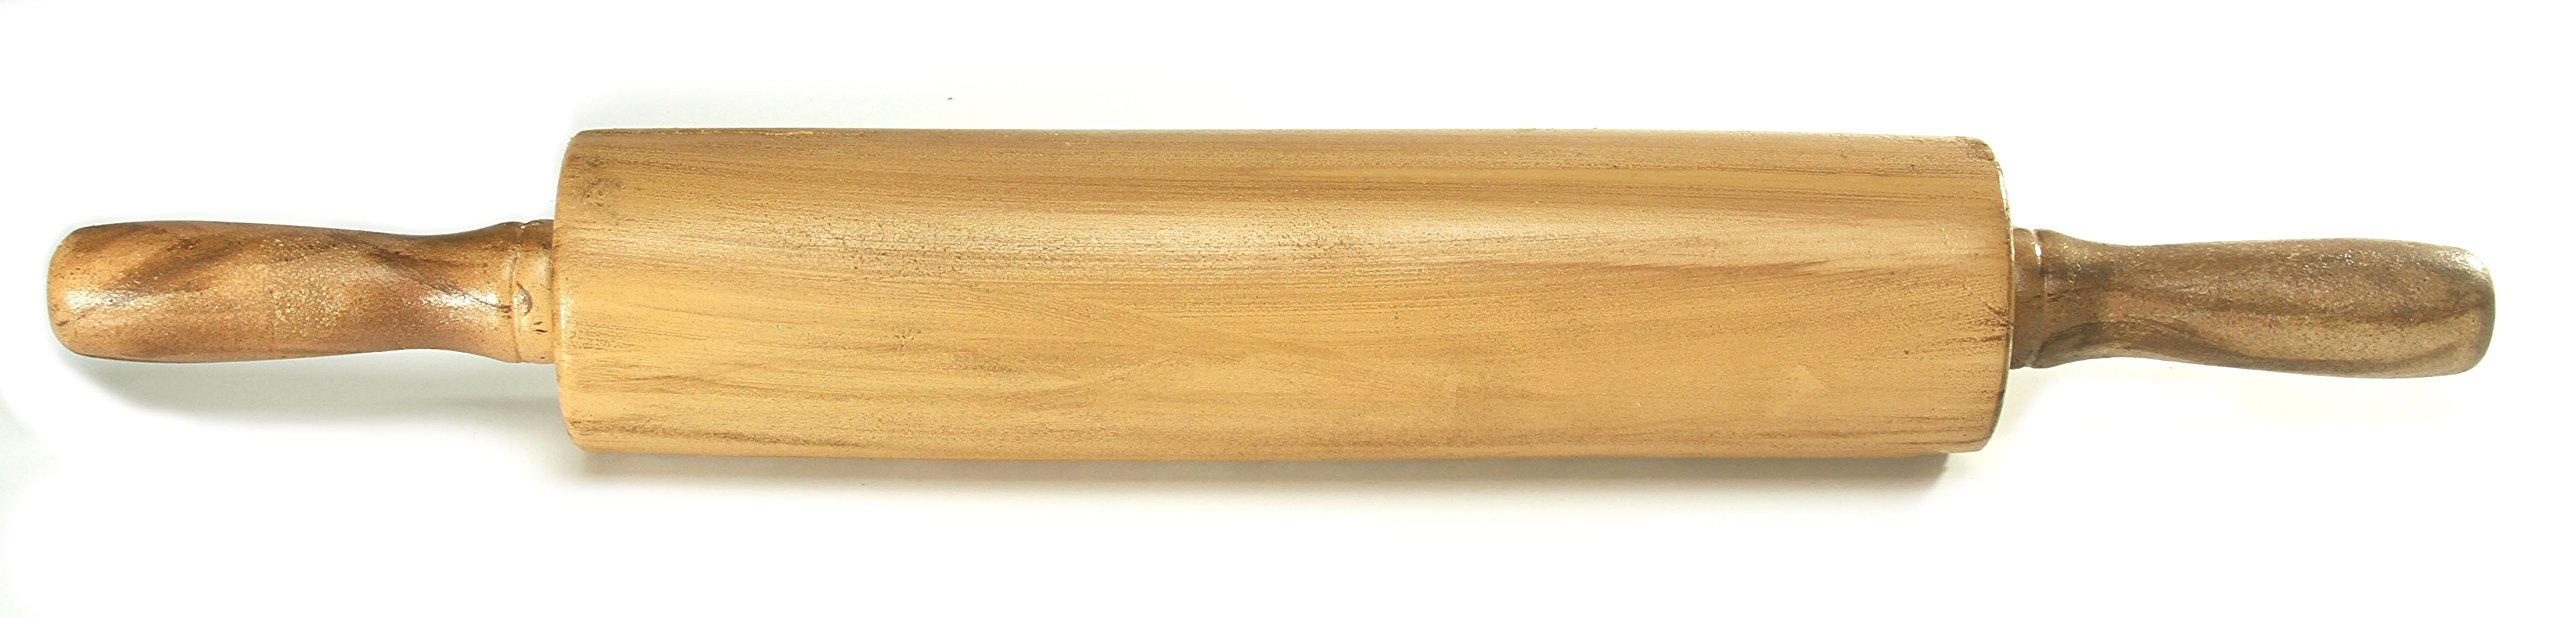 Professional Foam Rubber Wooden Rolling Pin Prop by NewRuleFX by NewRuleFX (Image #2)